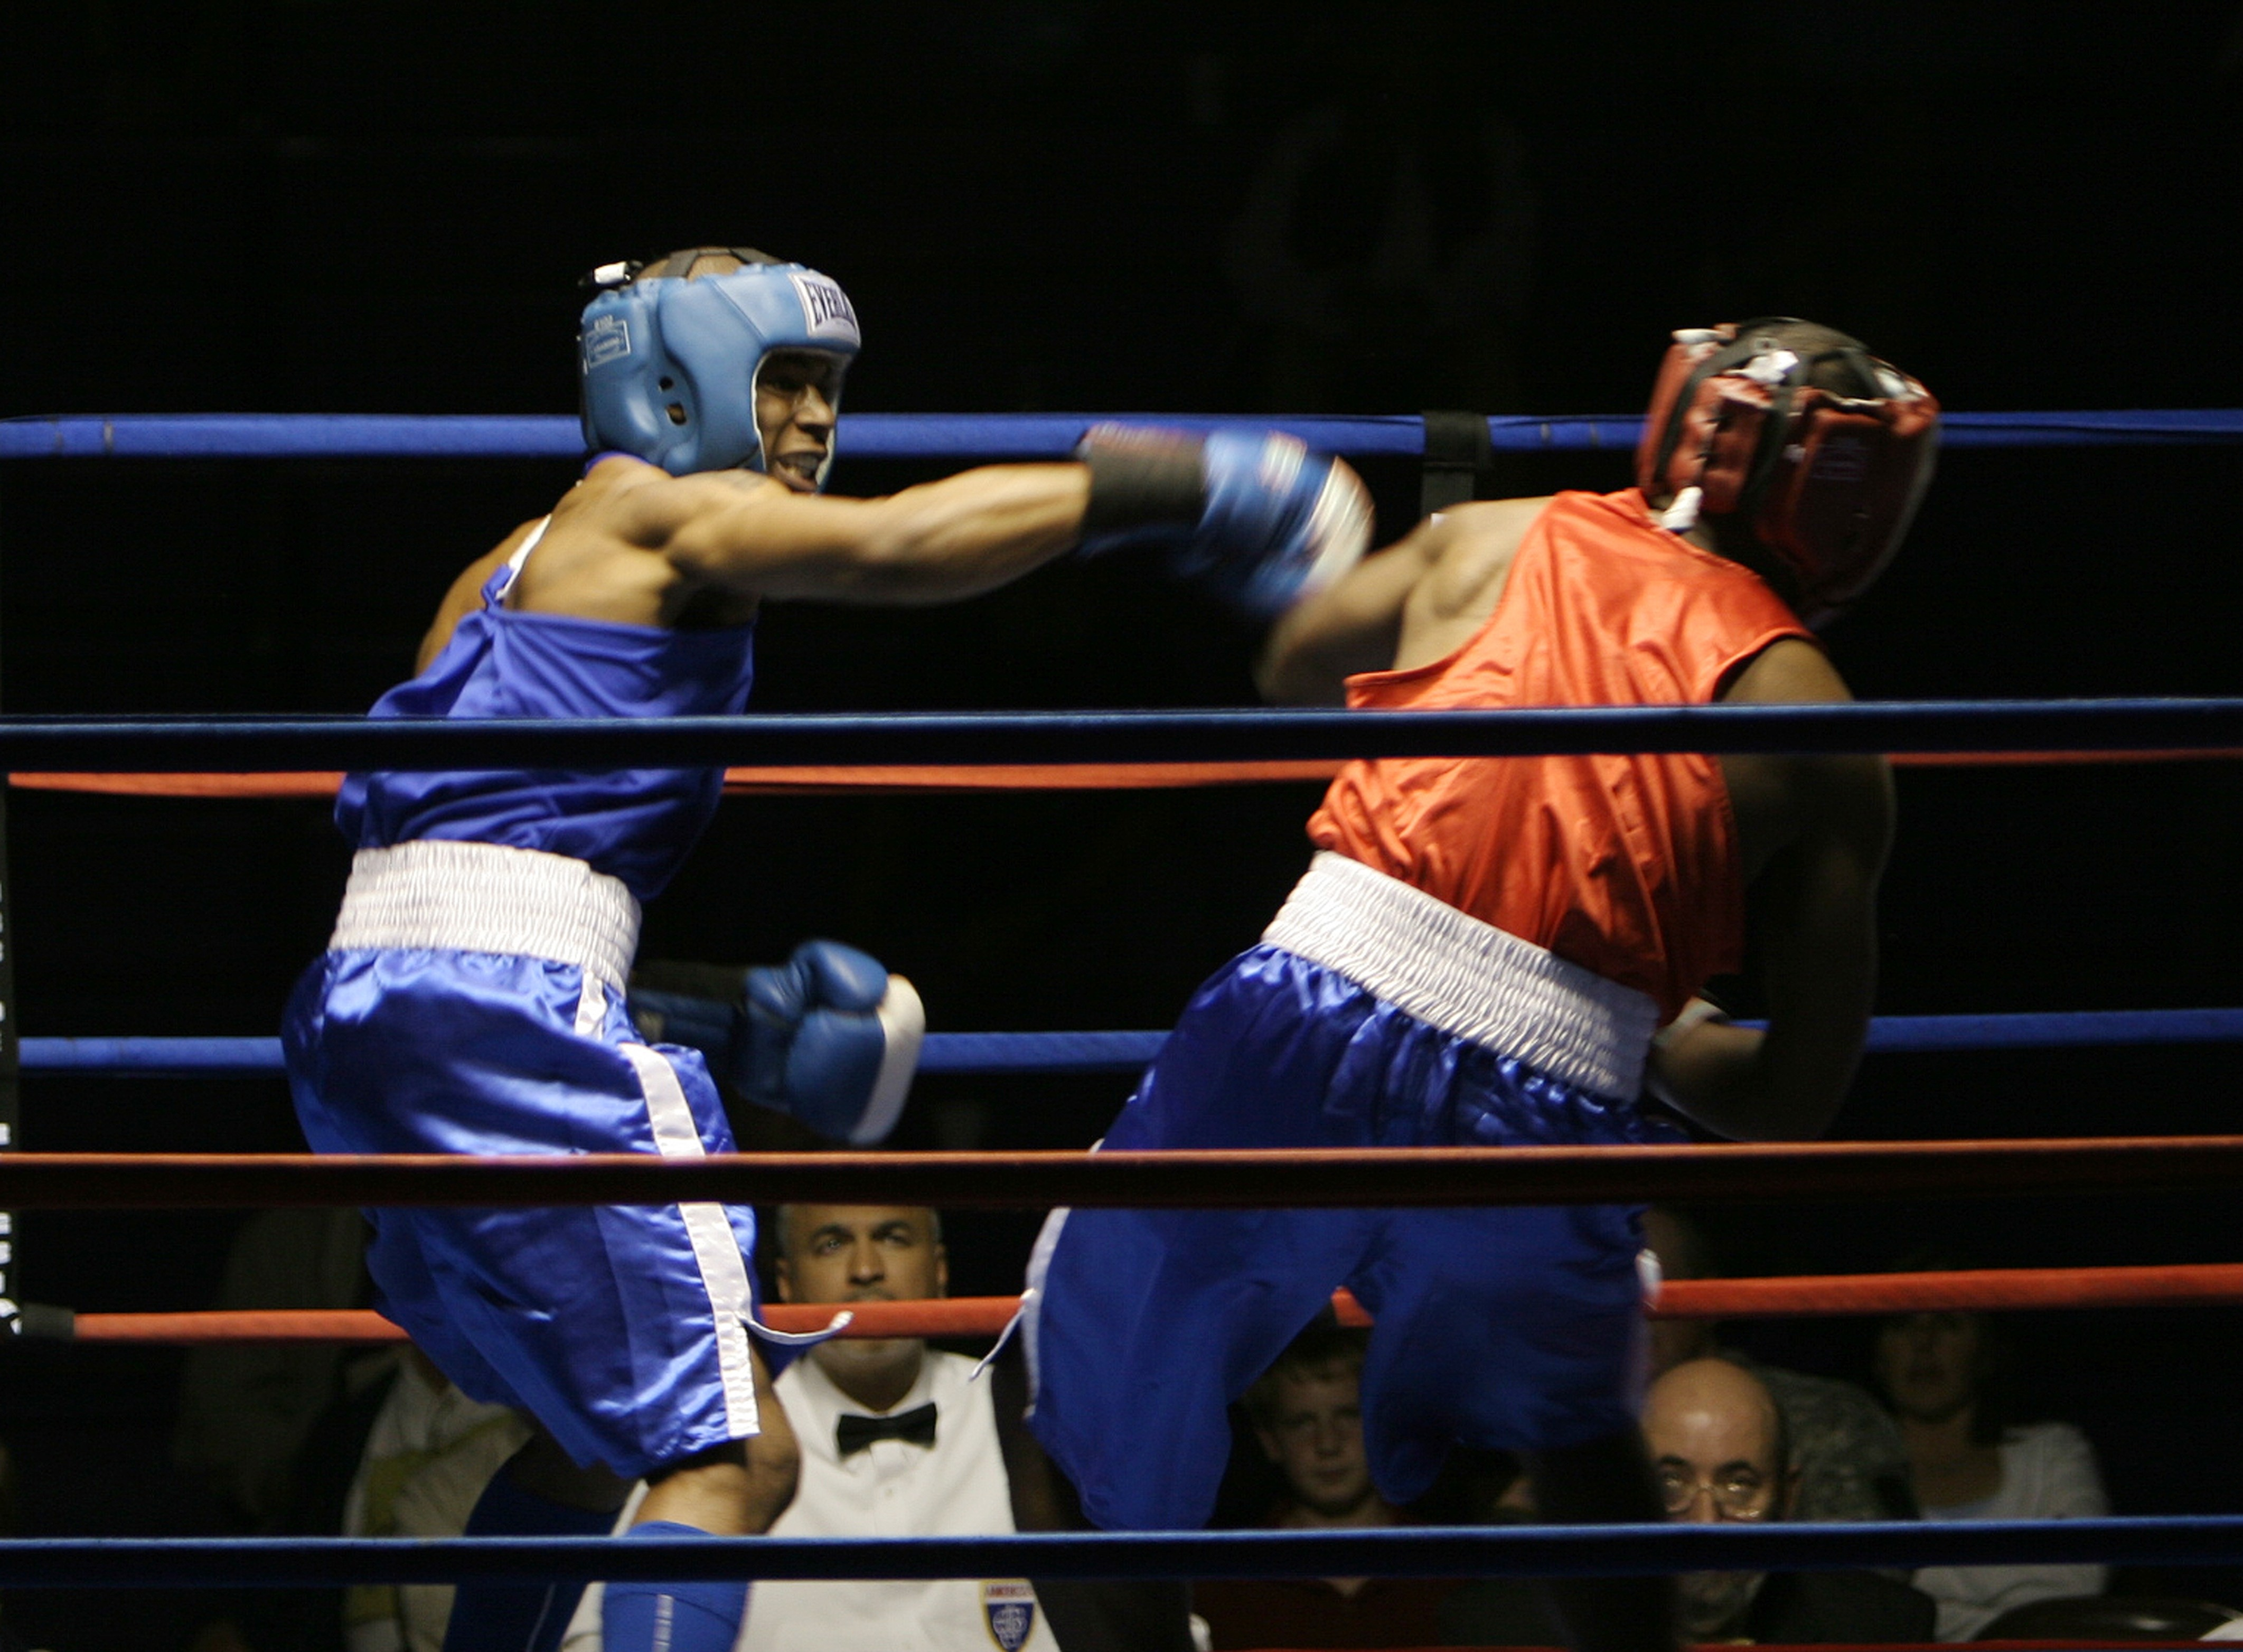 Alexis Texas Boxing nine soldiers advance to armed forces boxing championships